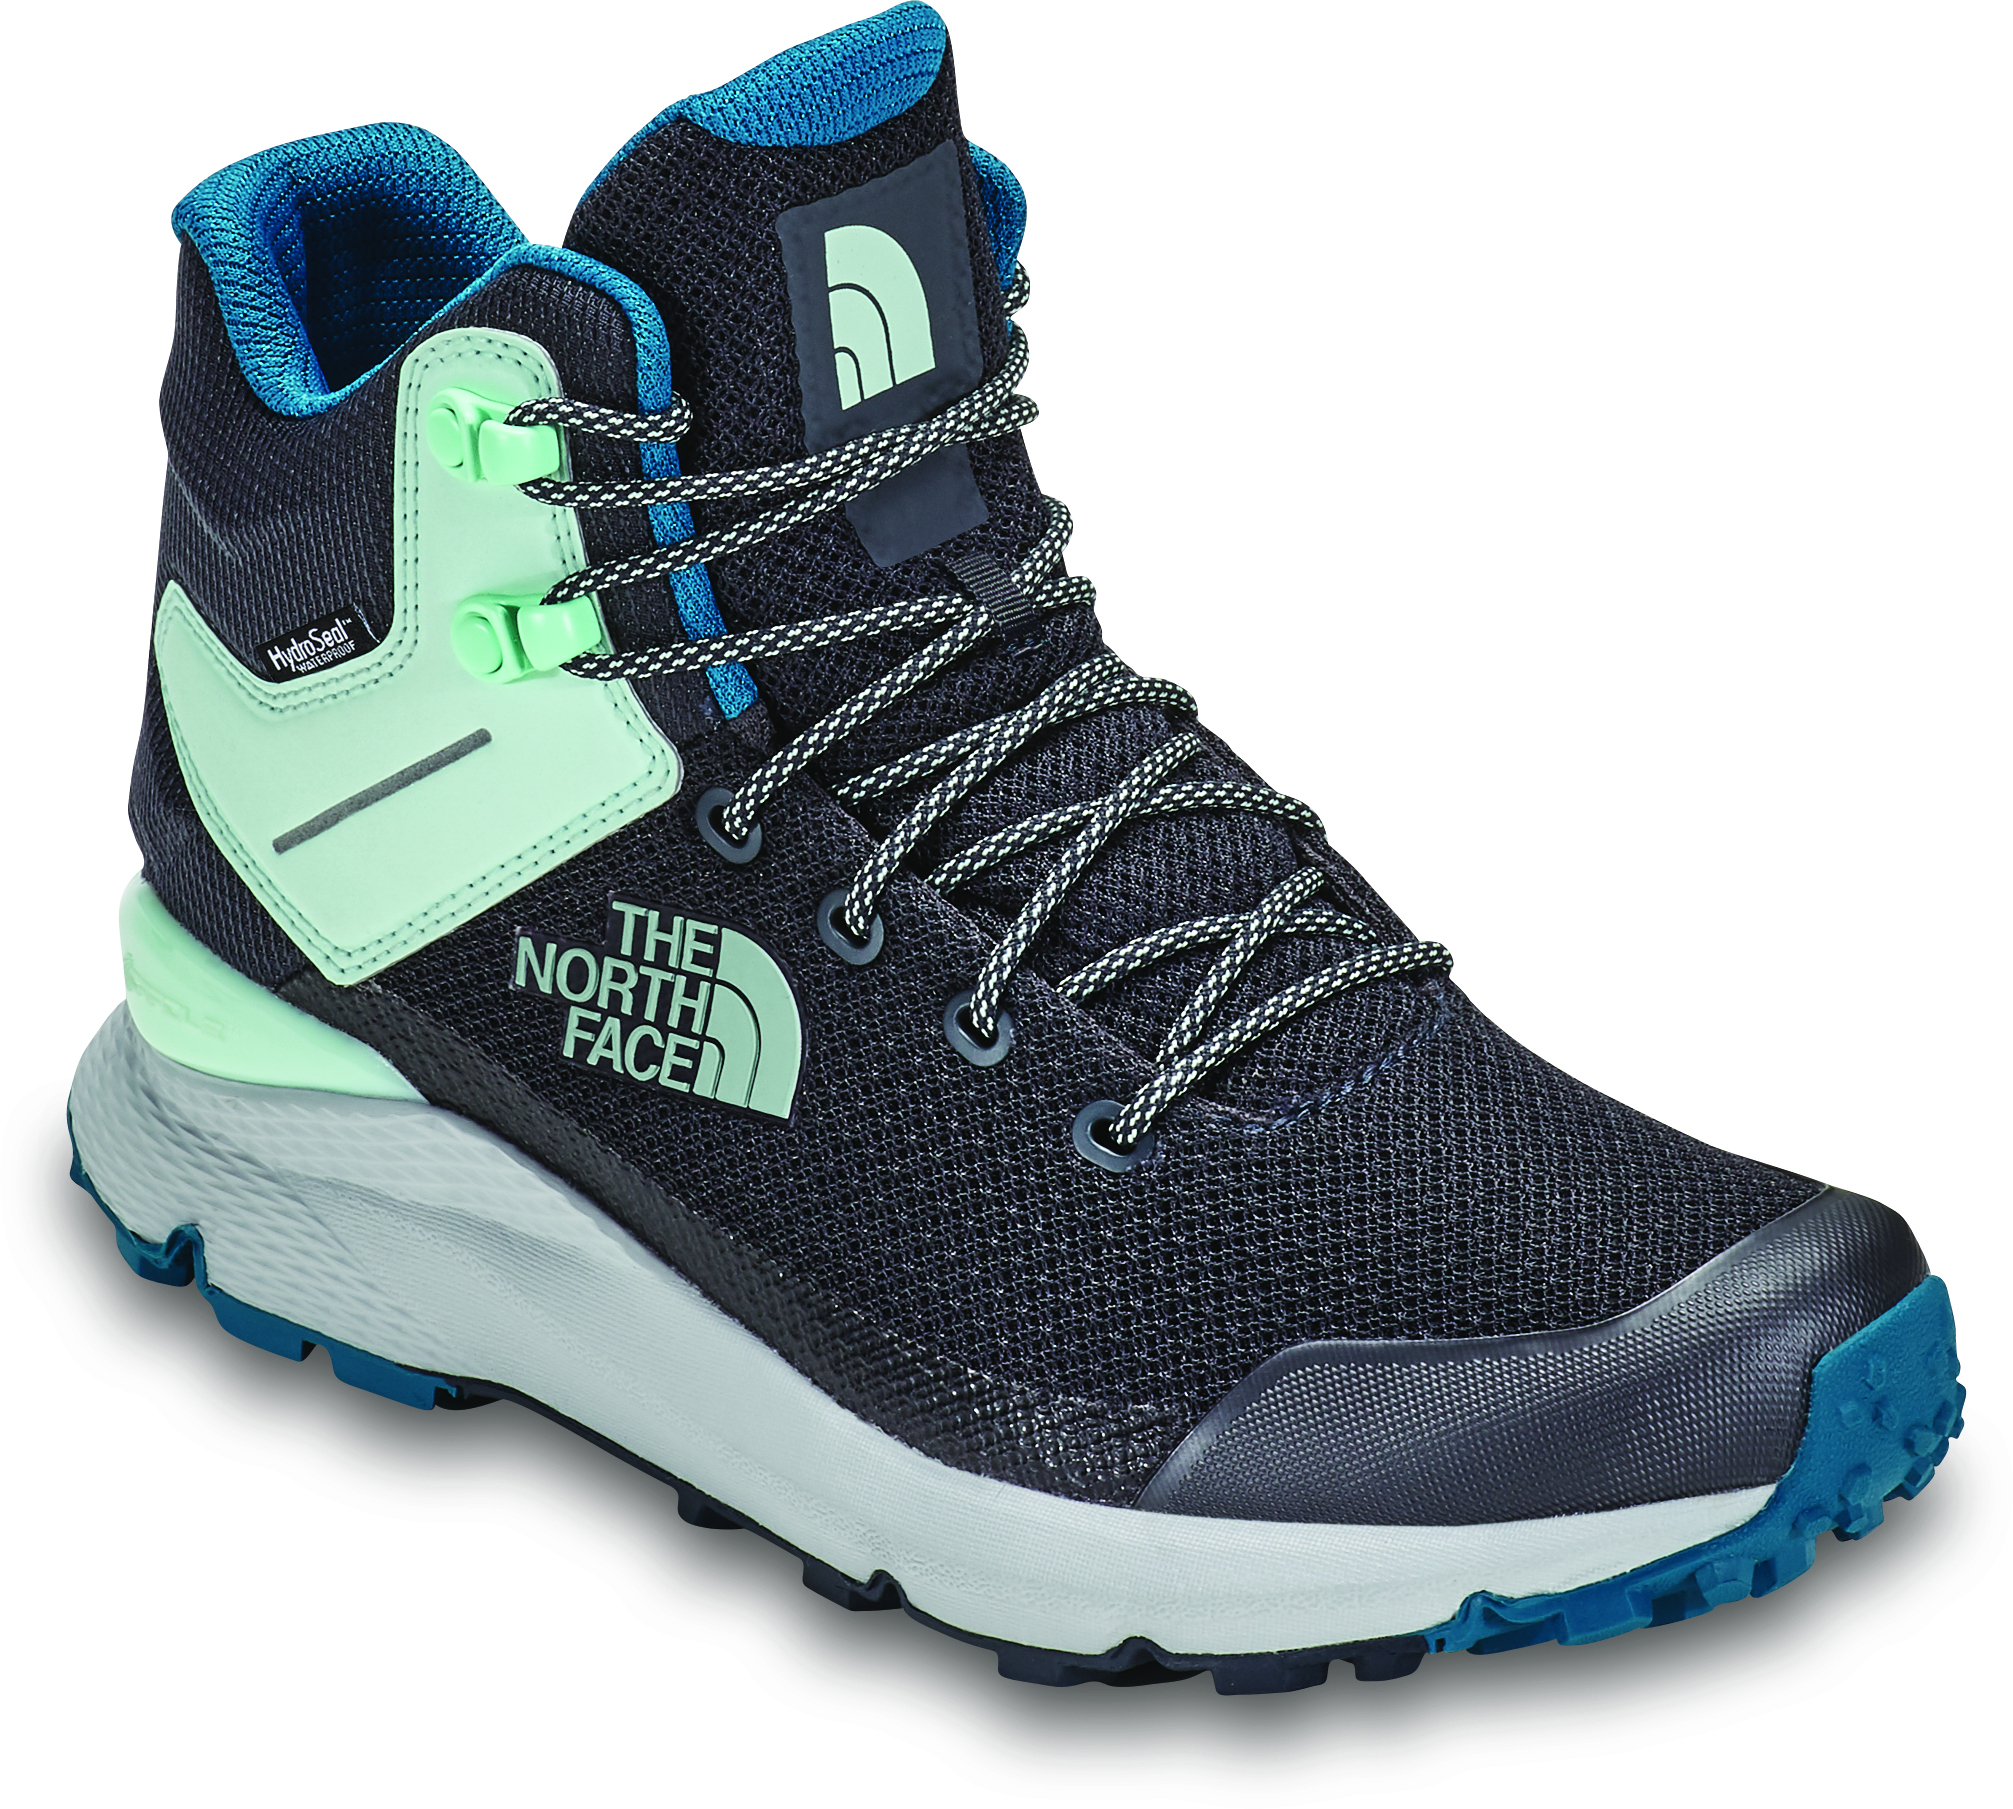 8e85a8f1b The North Face Vals Mid Waterproof Light Trail Shoes - Women's